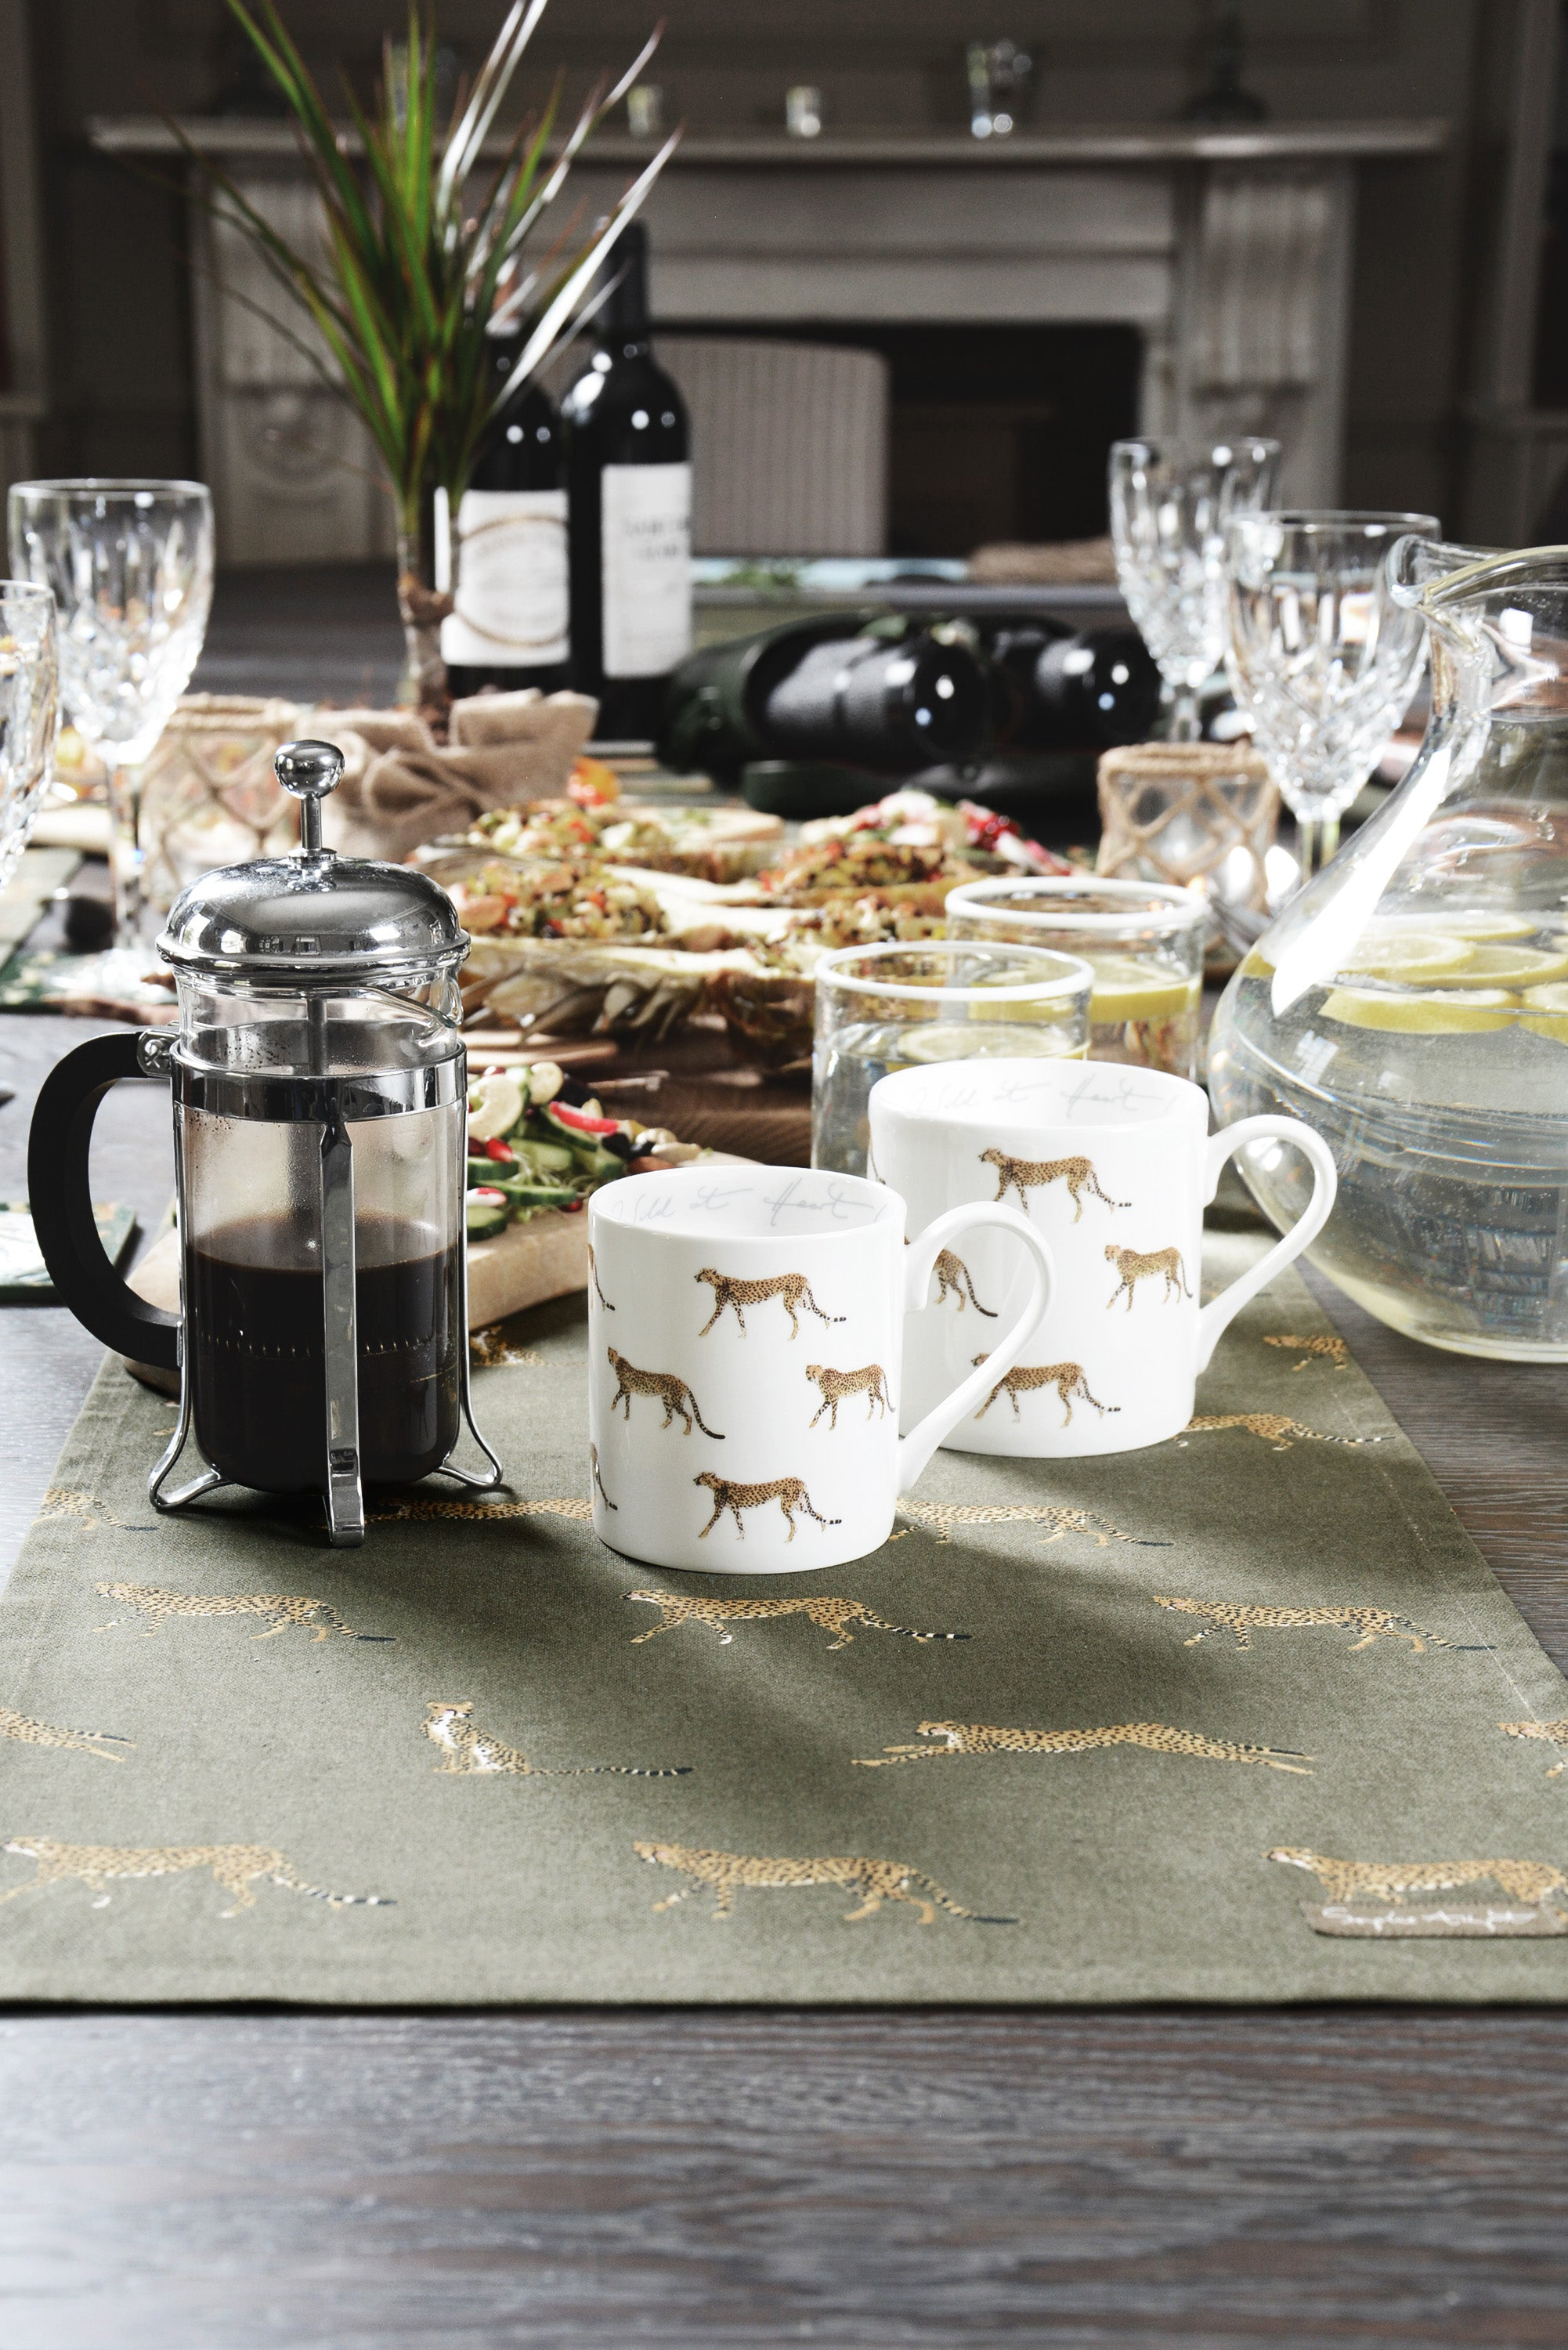 Read all about Sophie Allport's picks for the January sale - with up to 60% off